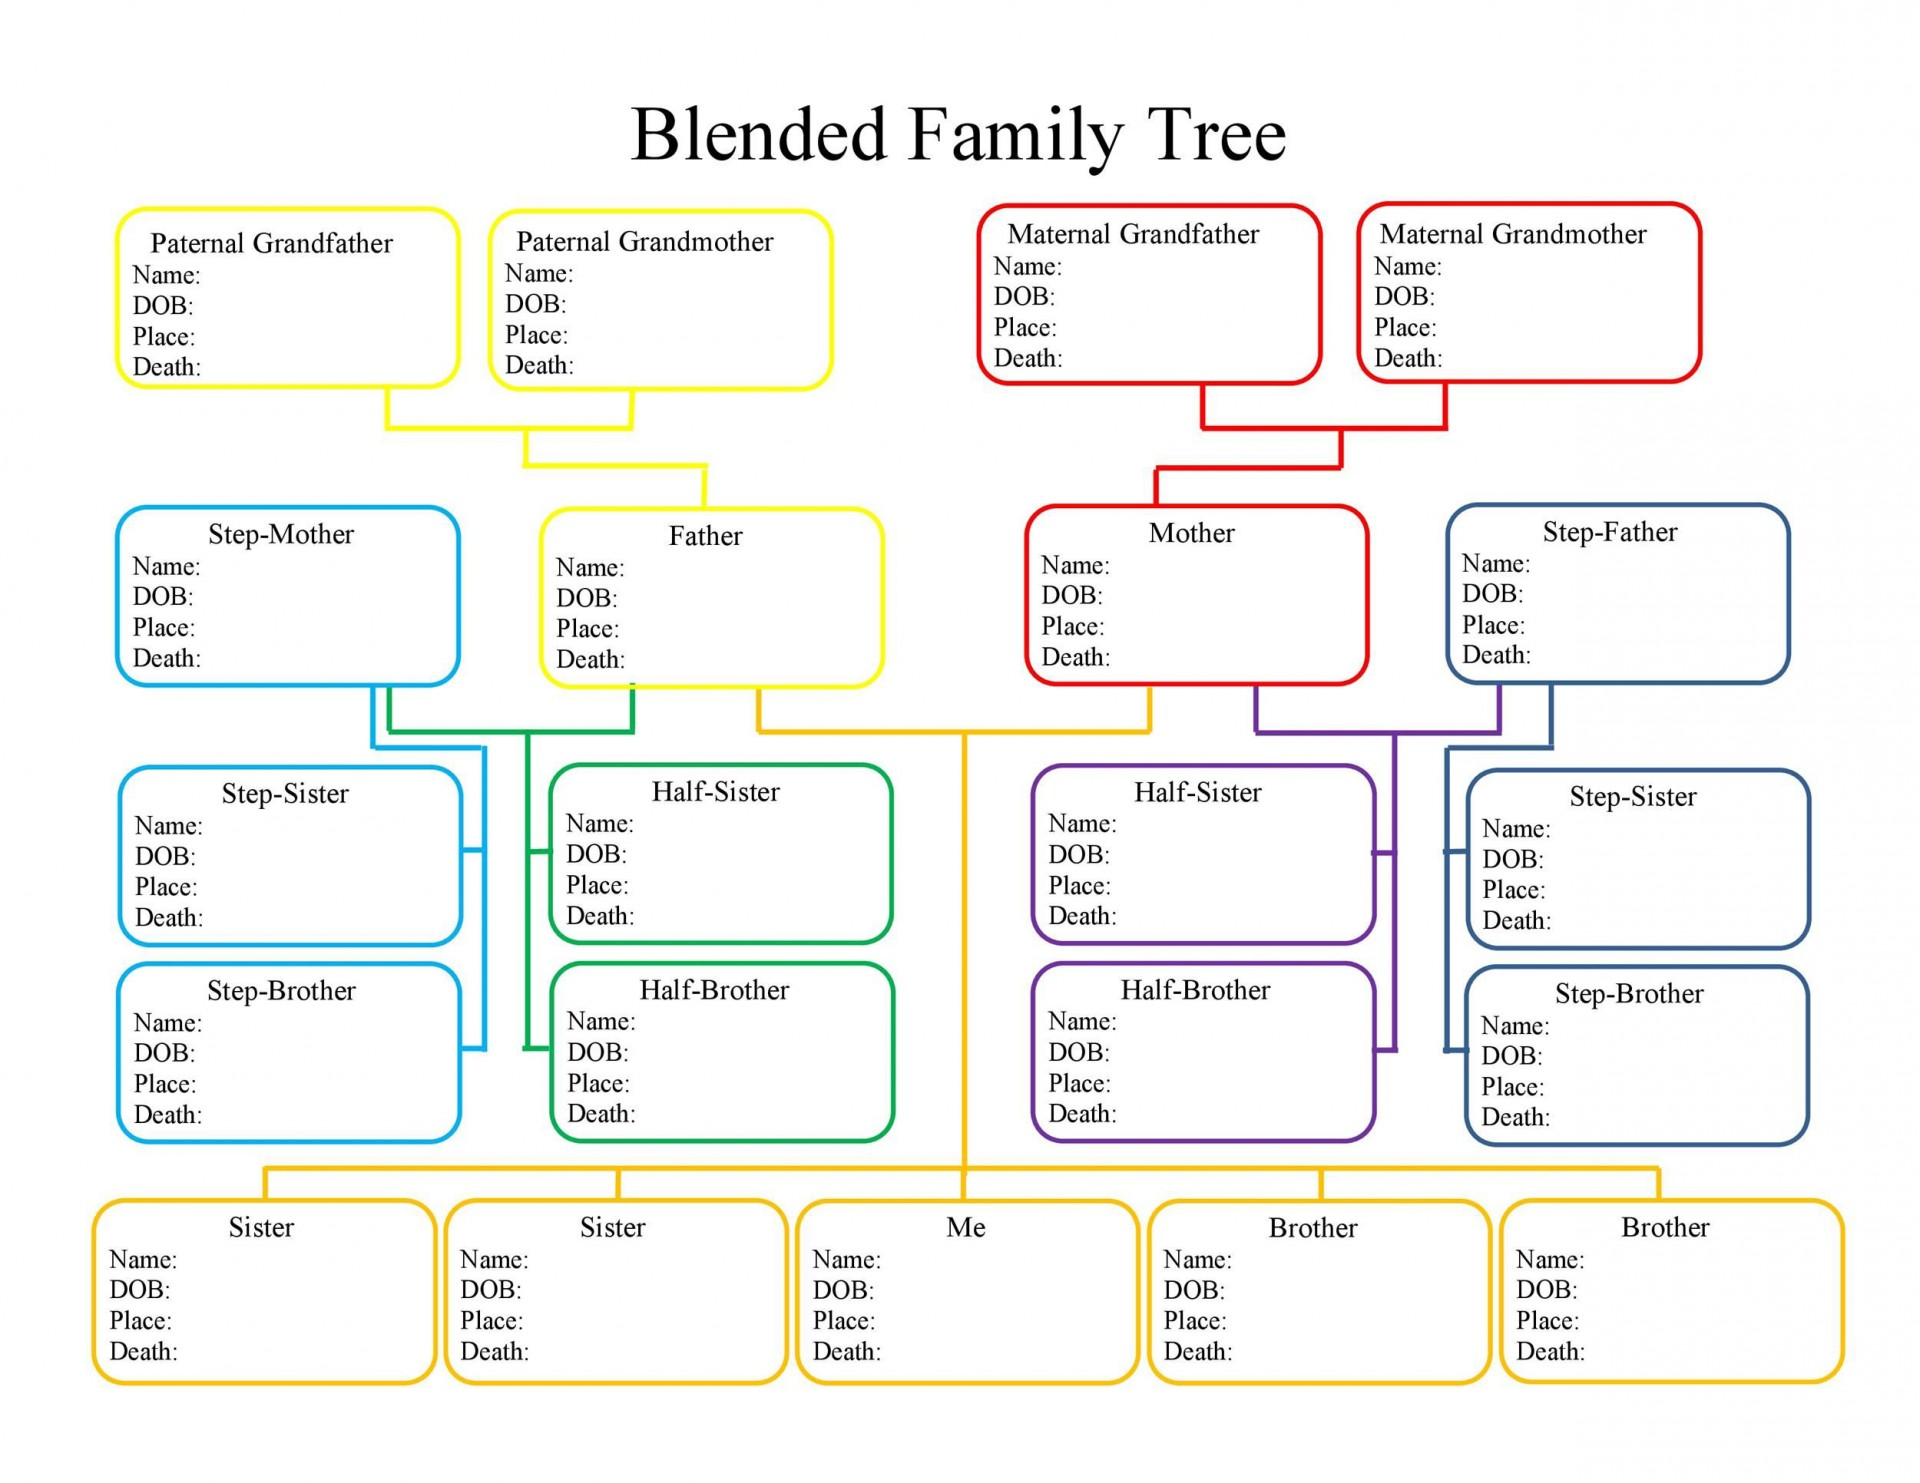 003 Remarkable Family Tree Template Word Concept  Free 2010 Doc Download1920